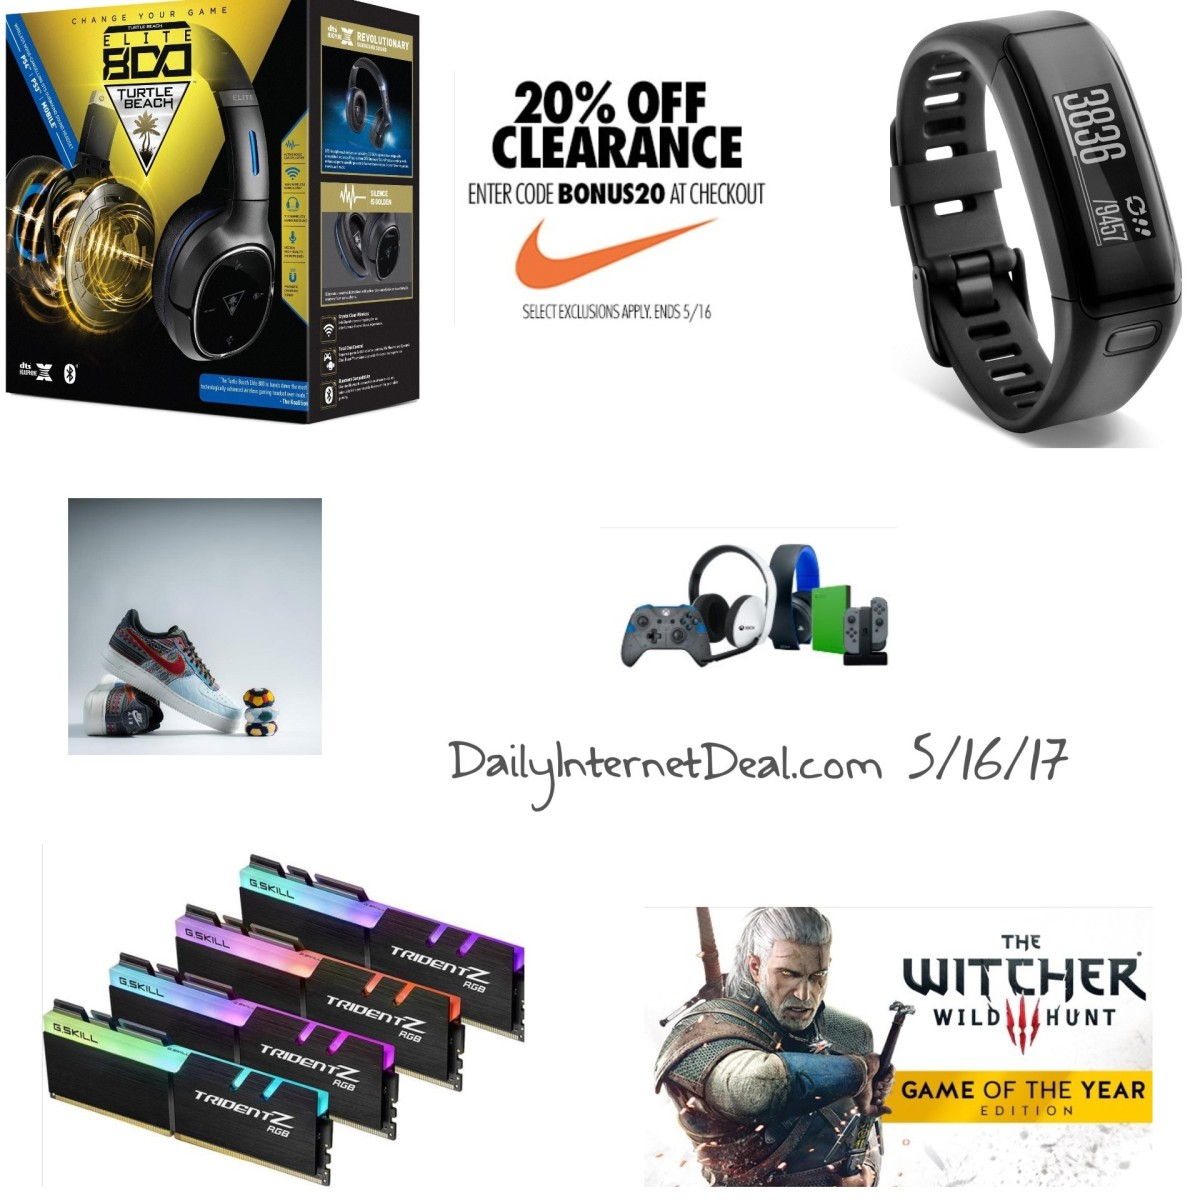 Last Day for Nike clearance sale, Garmin fit tracker for $60, Save 20% at EastBay and Hot topic XBOX live 12 month for $46 Daily Internet Deals5/16/17